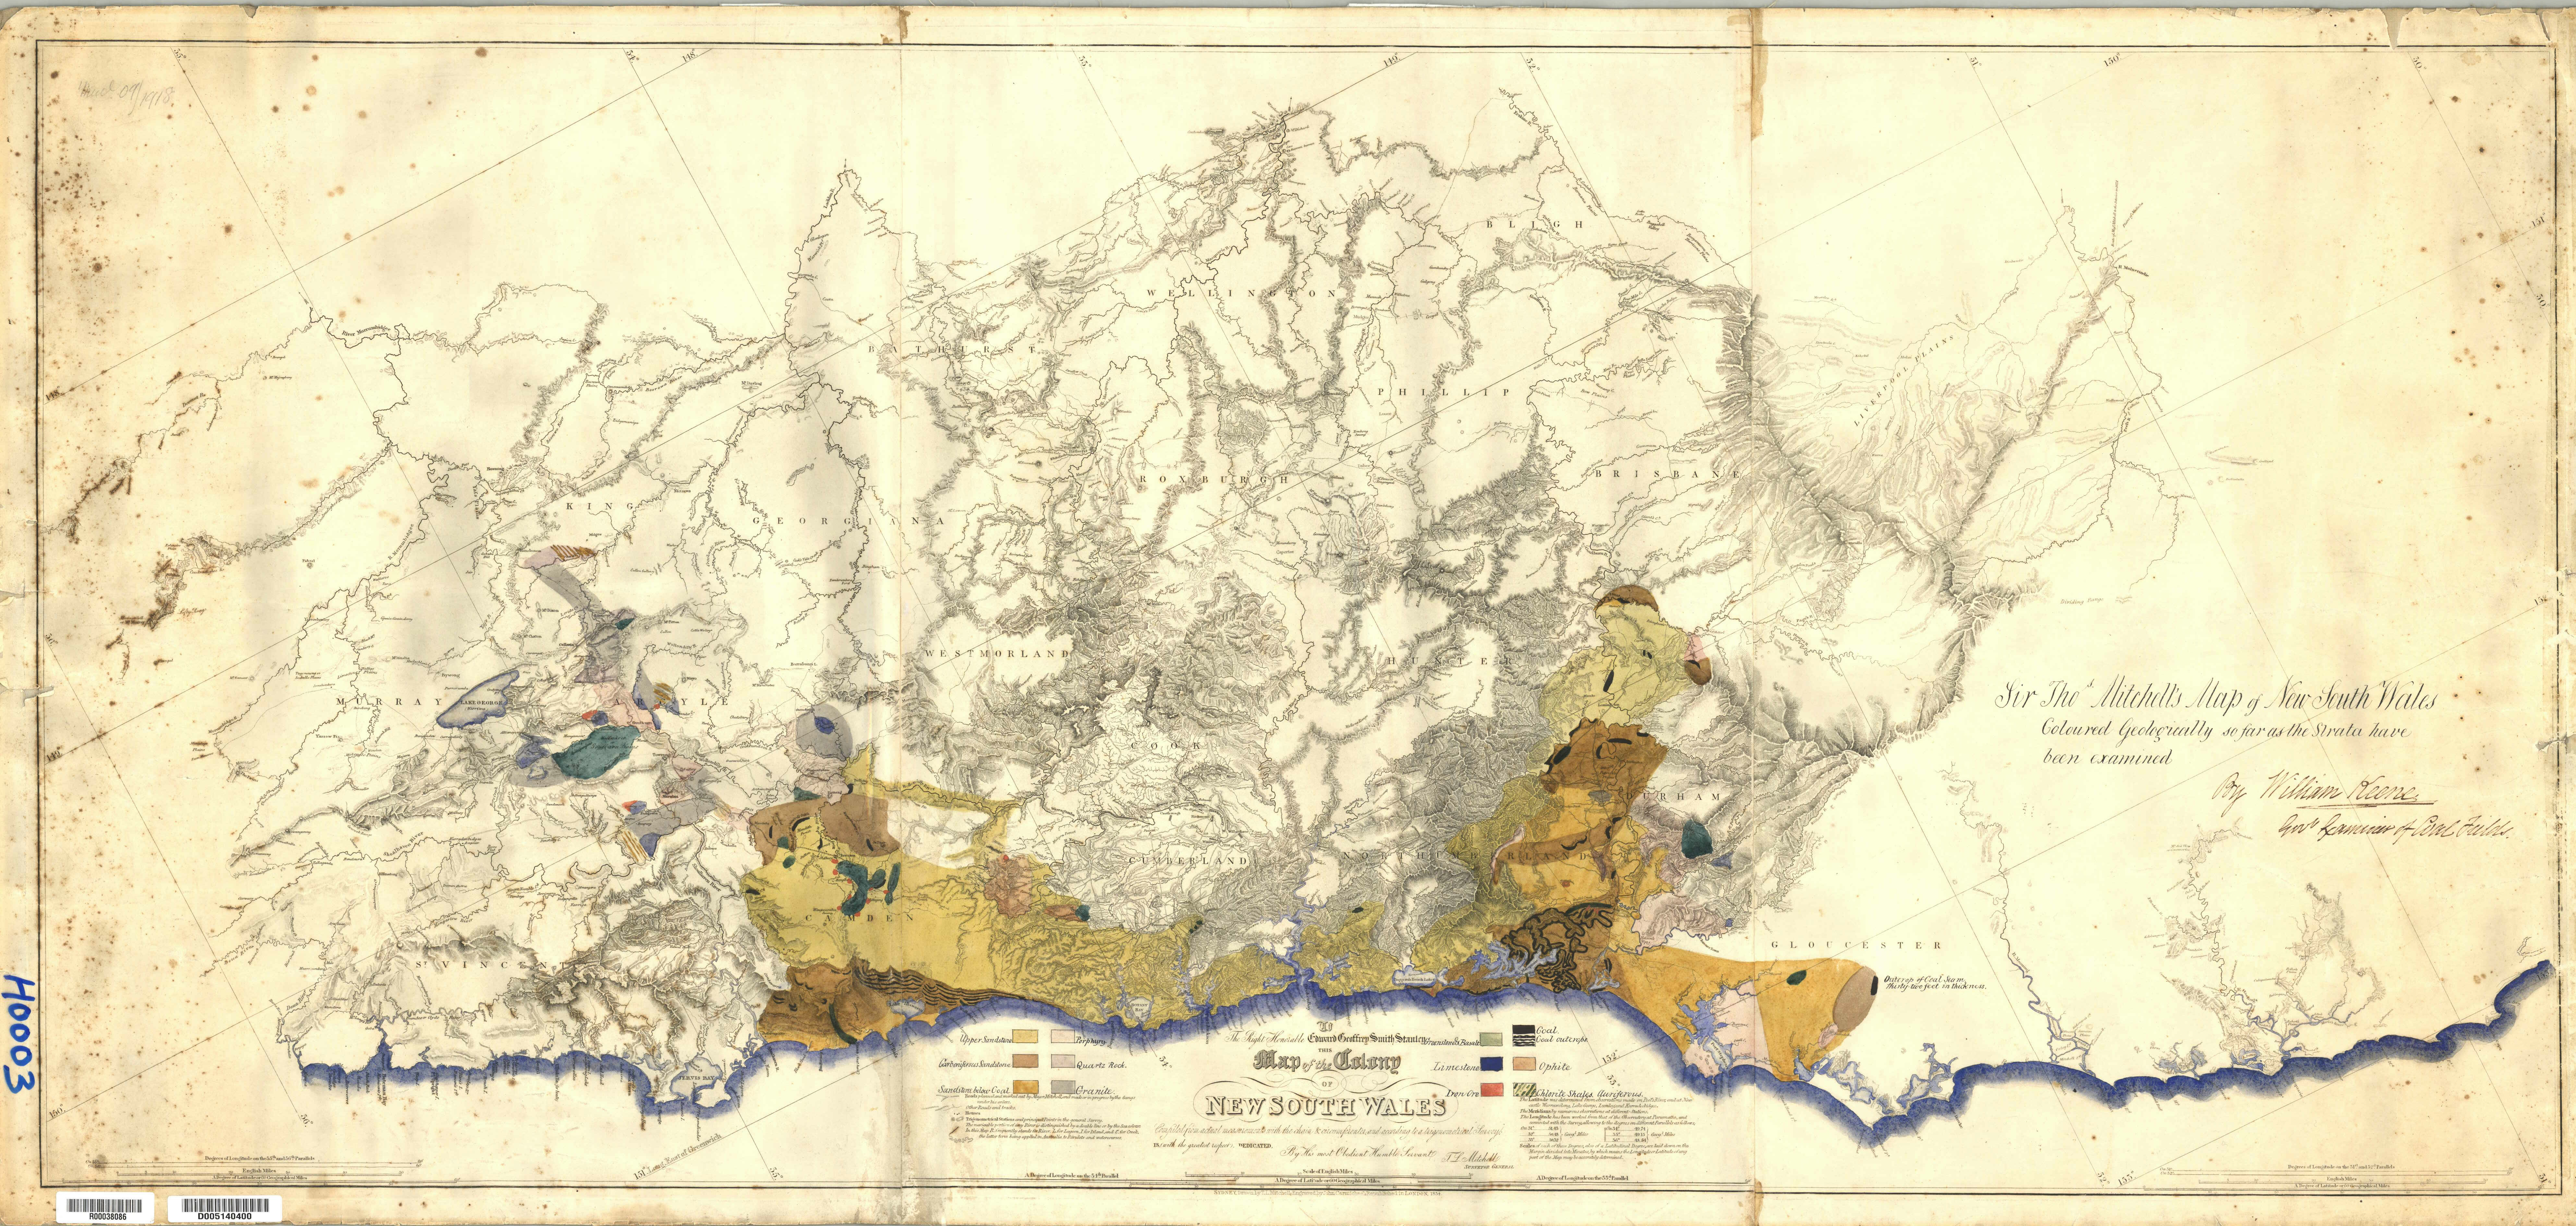 Map of the Colony of New South Wales 1834 by T.L. Mitchell, Surveyor General (Courtesy of the DIGS Database)